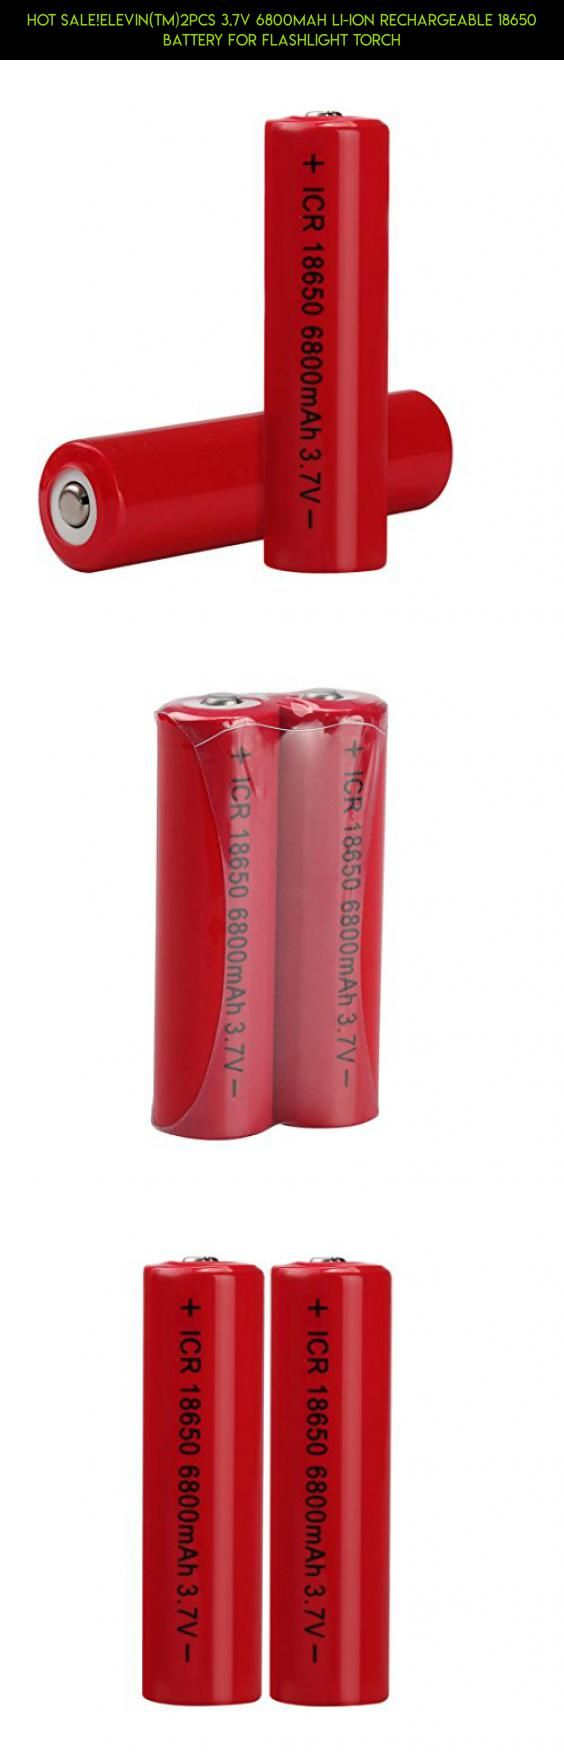 Hot Sale!Elevin(TM)2PCS 3.7V 6800mAH Li-ion Rechargeable 18650 Battery for Flashlight Torch #shopping #wltoys #tech #drone #road #camera #led #vehicle #parts #off #technology #kit #gadgets #products #racing #fpv #plans #light